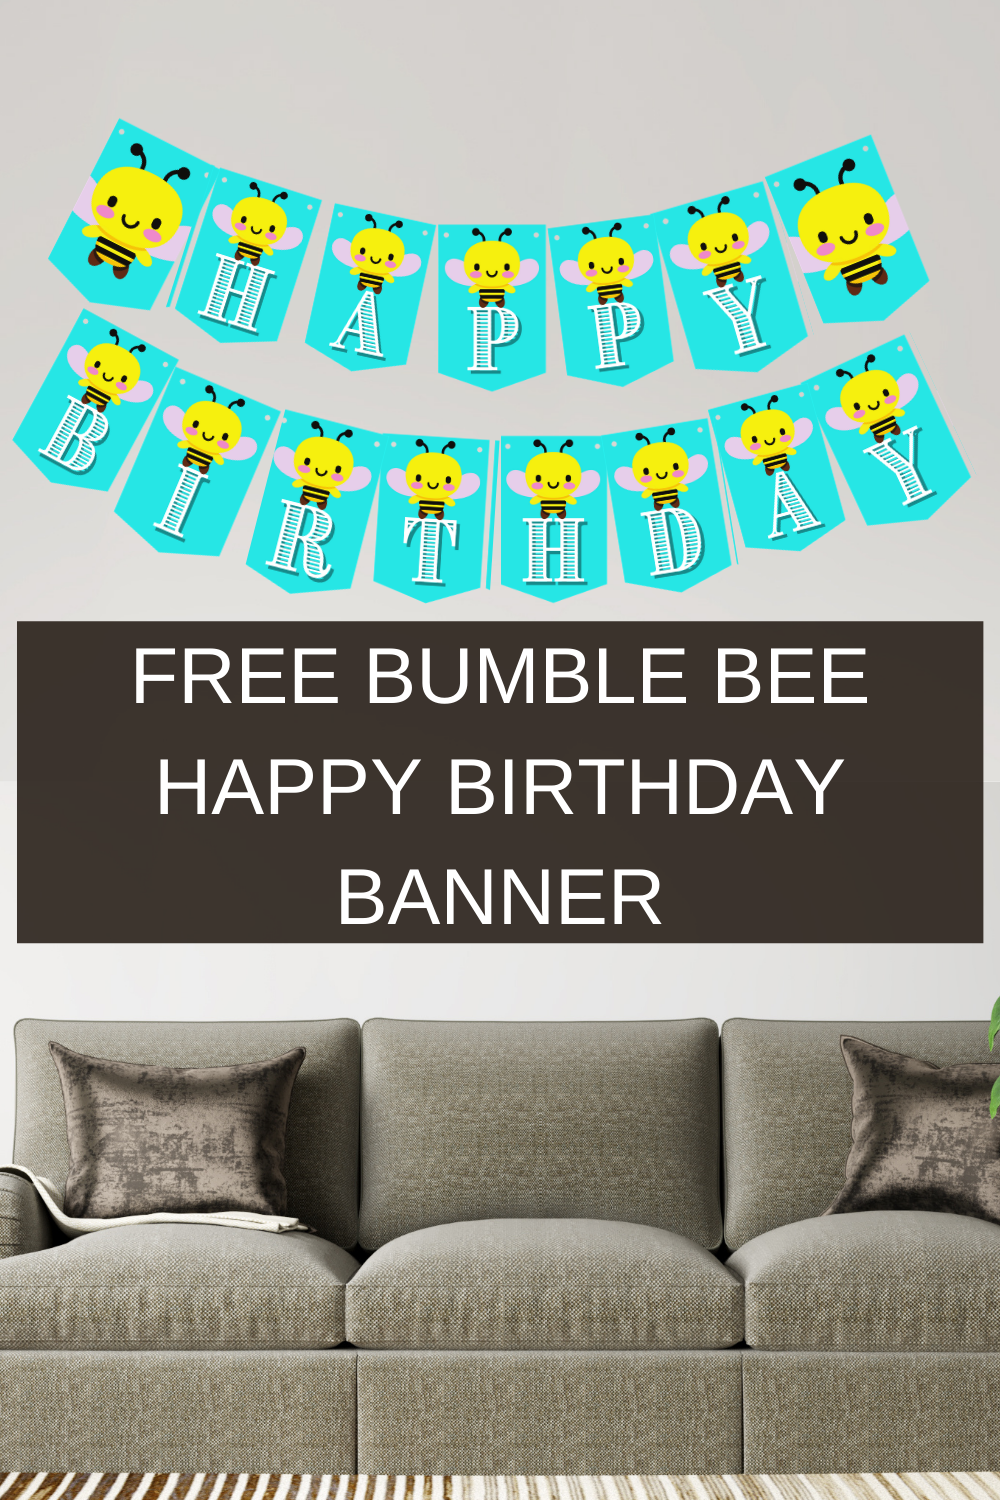 First birthday banner for a bumble bee birthday party